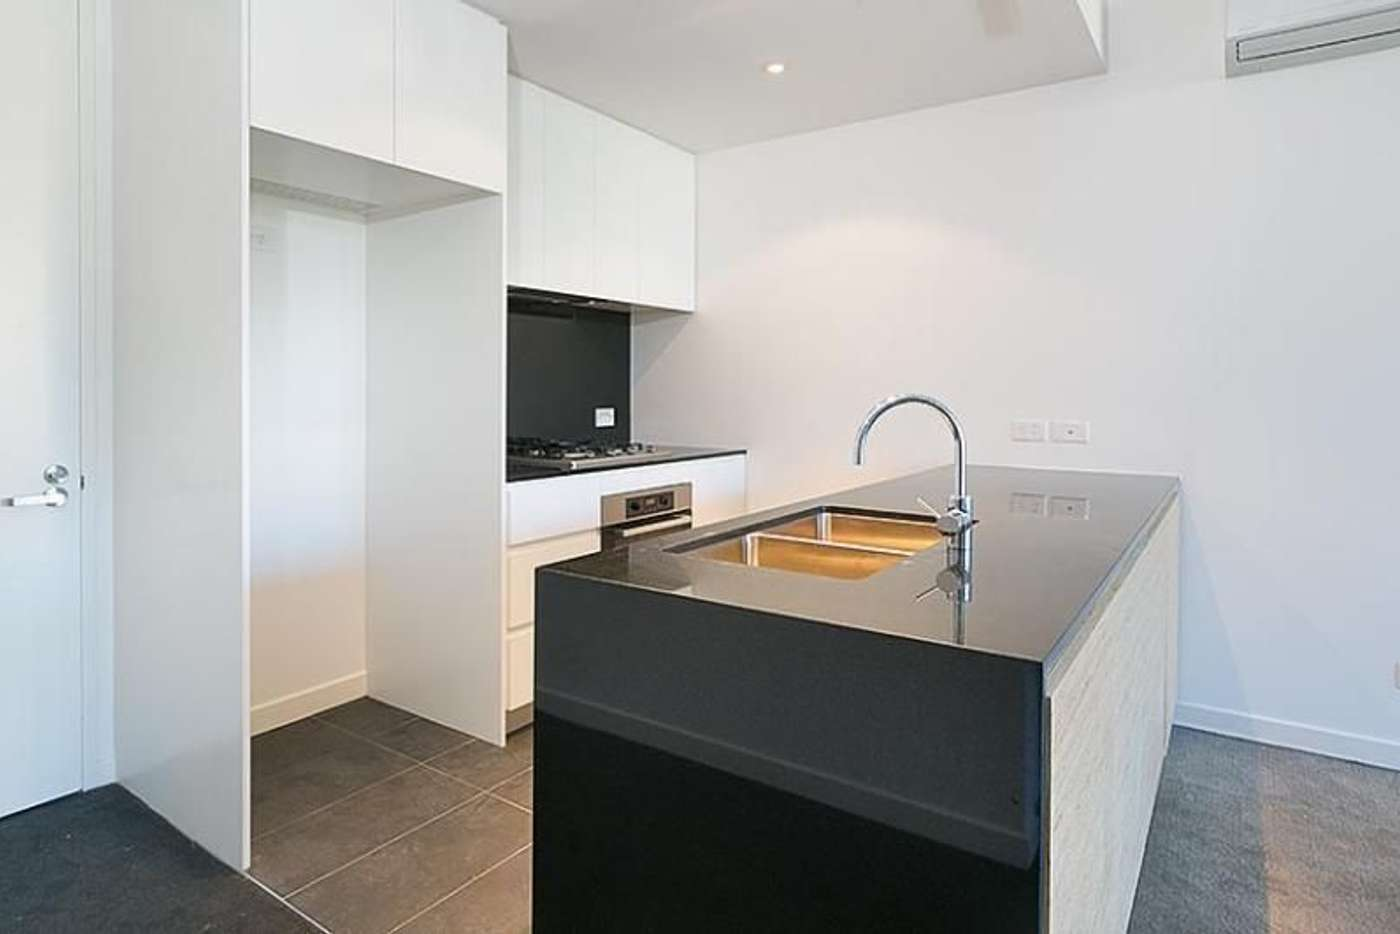 Main view of Homely apartment listing, 16/299 Forbes Street, Darlinghurst NSW 2010